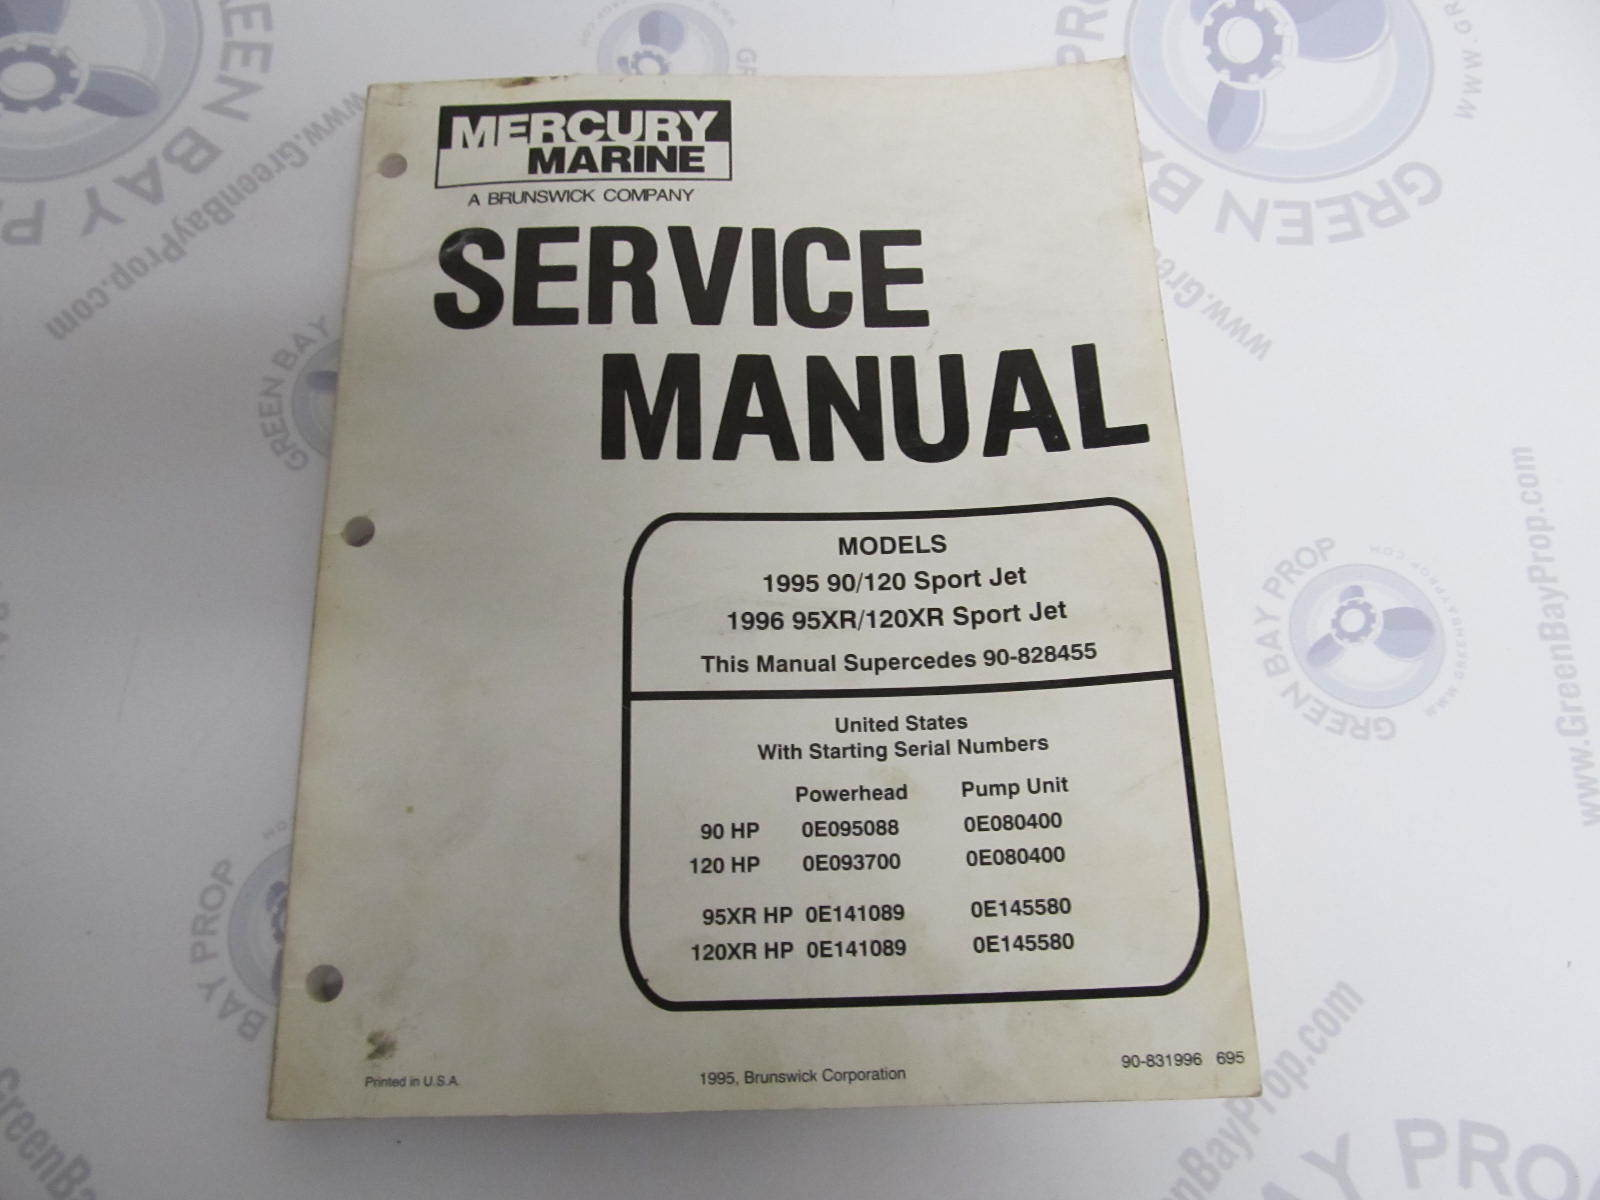 1995 Mercury Mariner Outboard Service Manual 90 95 120 ...